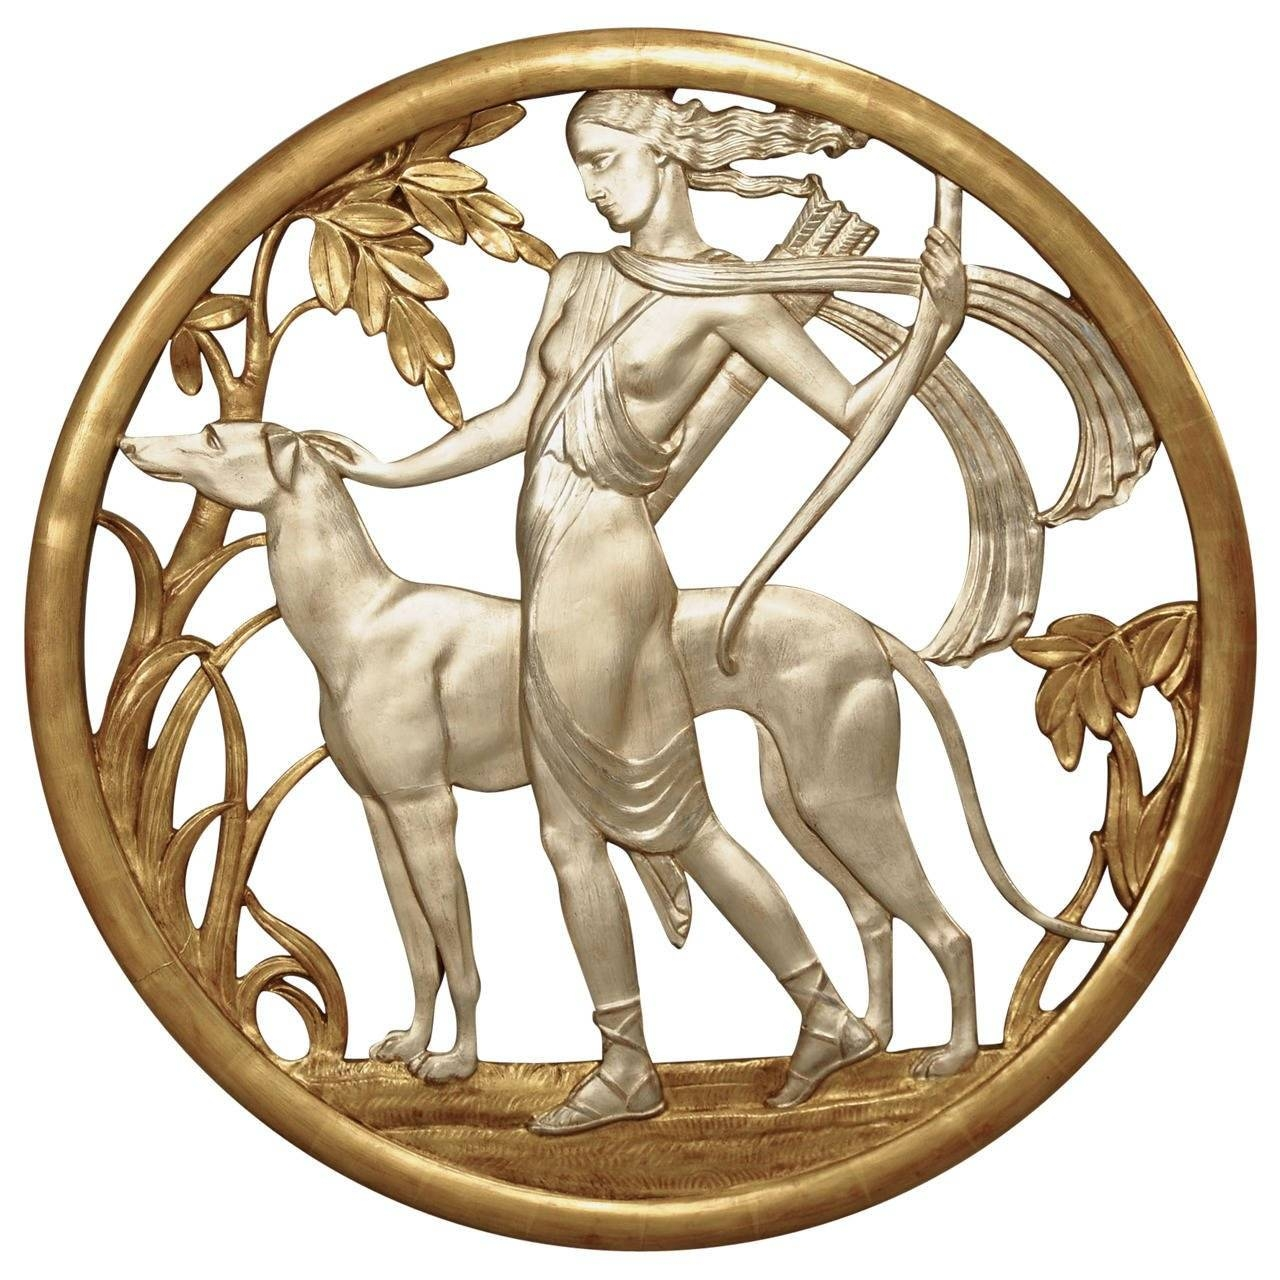 Important Art Deco Mythological Gilt Wall Plaque For Sale At 1stdibs Intended For Latest Art Deco Metal Wall Art (View 5 of 20)